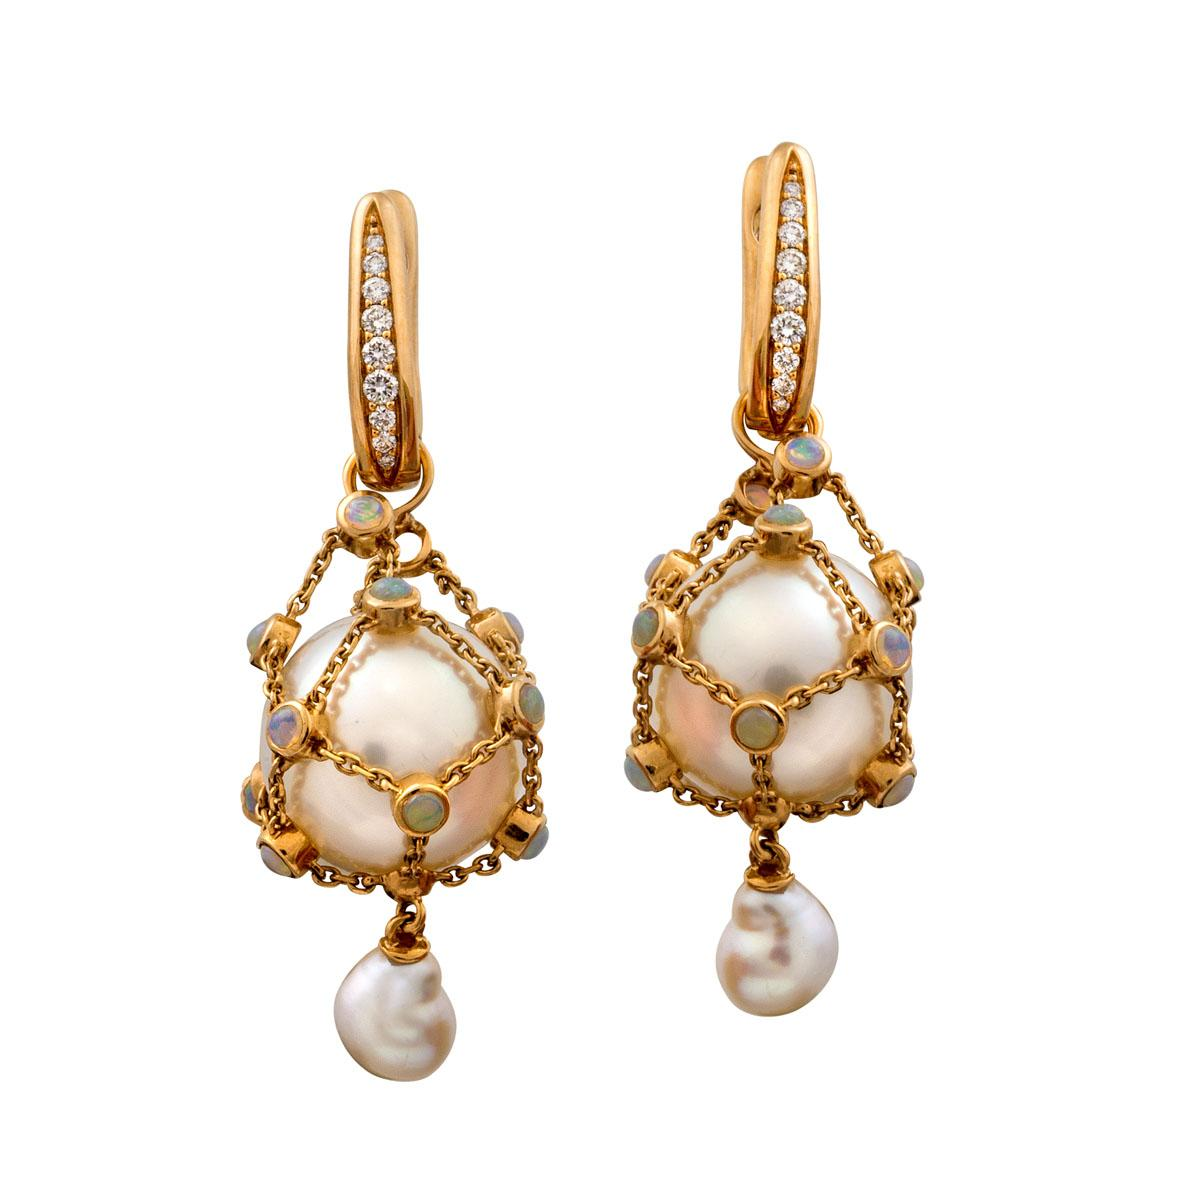 Pair Of 18ct Rose Gold White Star South Sea Pearl Keshi Opal And Diamond Lavalier Pendant Earrings Paspaley Sotheby S Australia